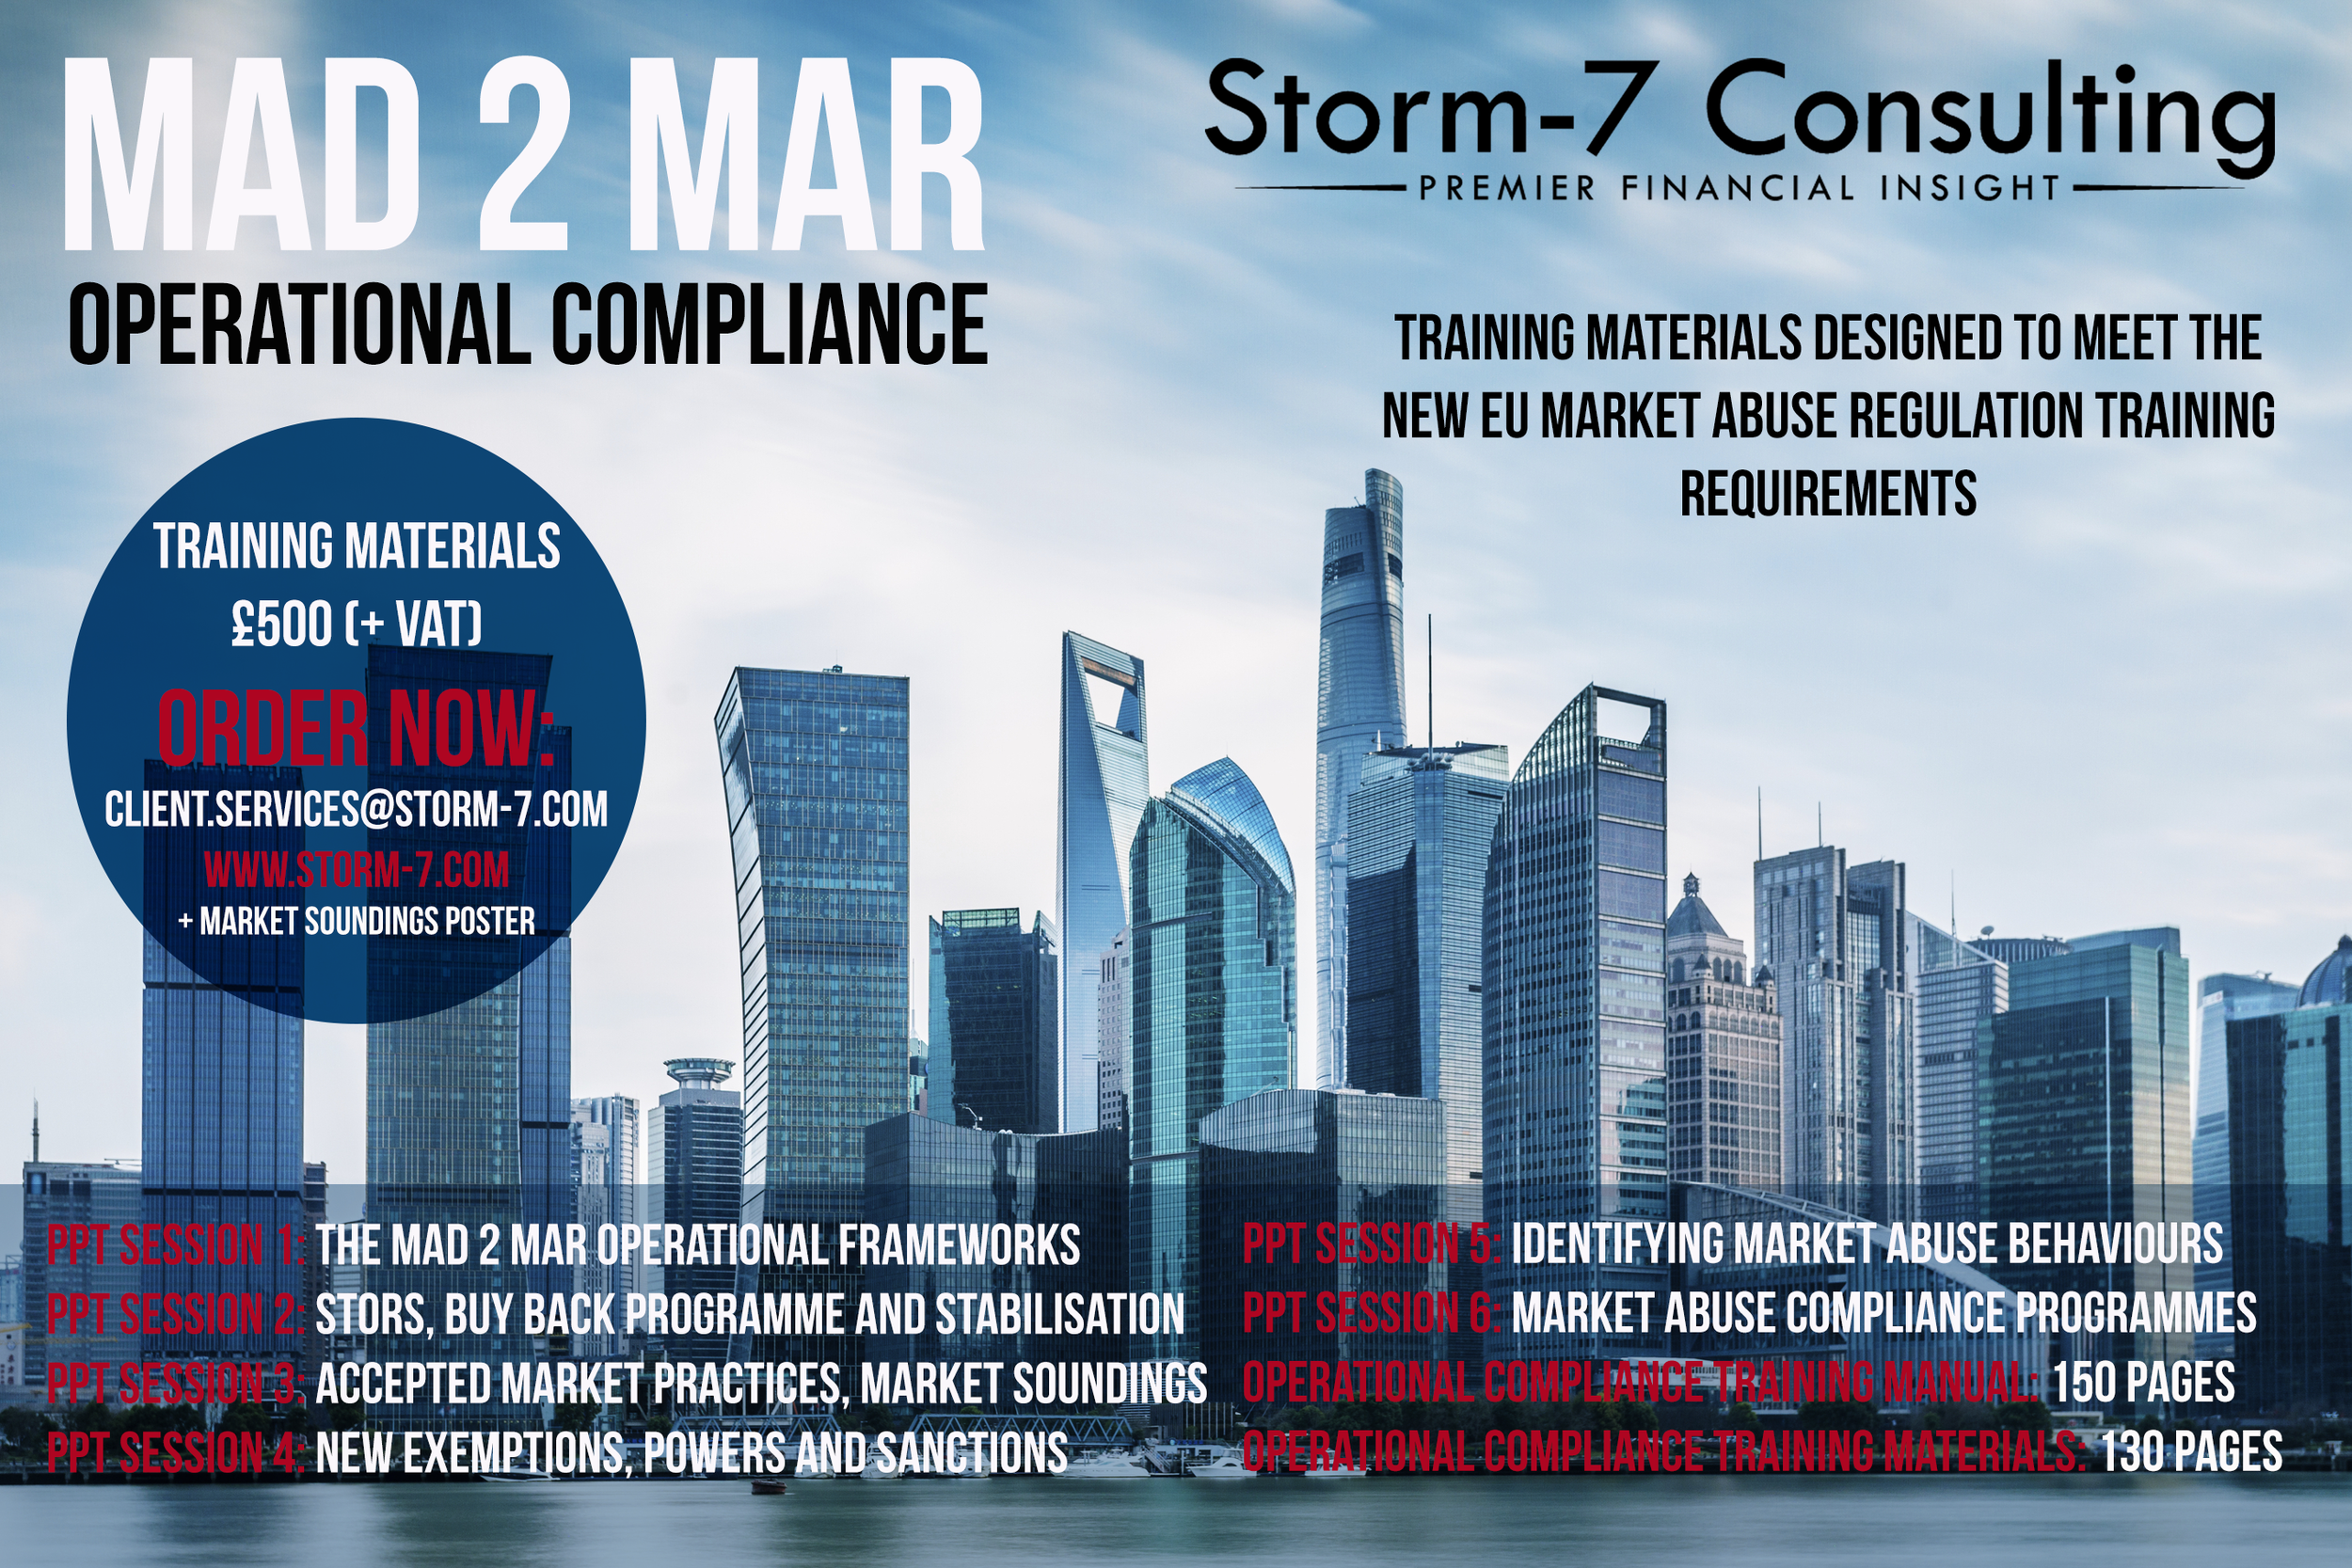 MAD 2 MAR: Operational Compliance Training Materials — S7C